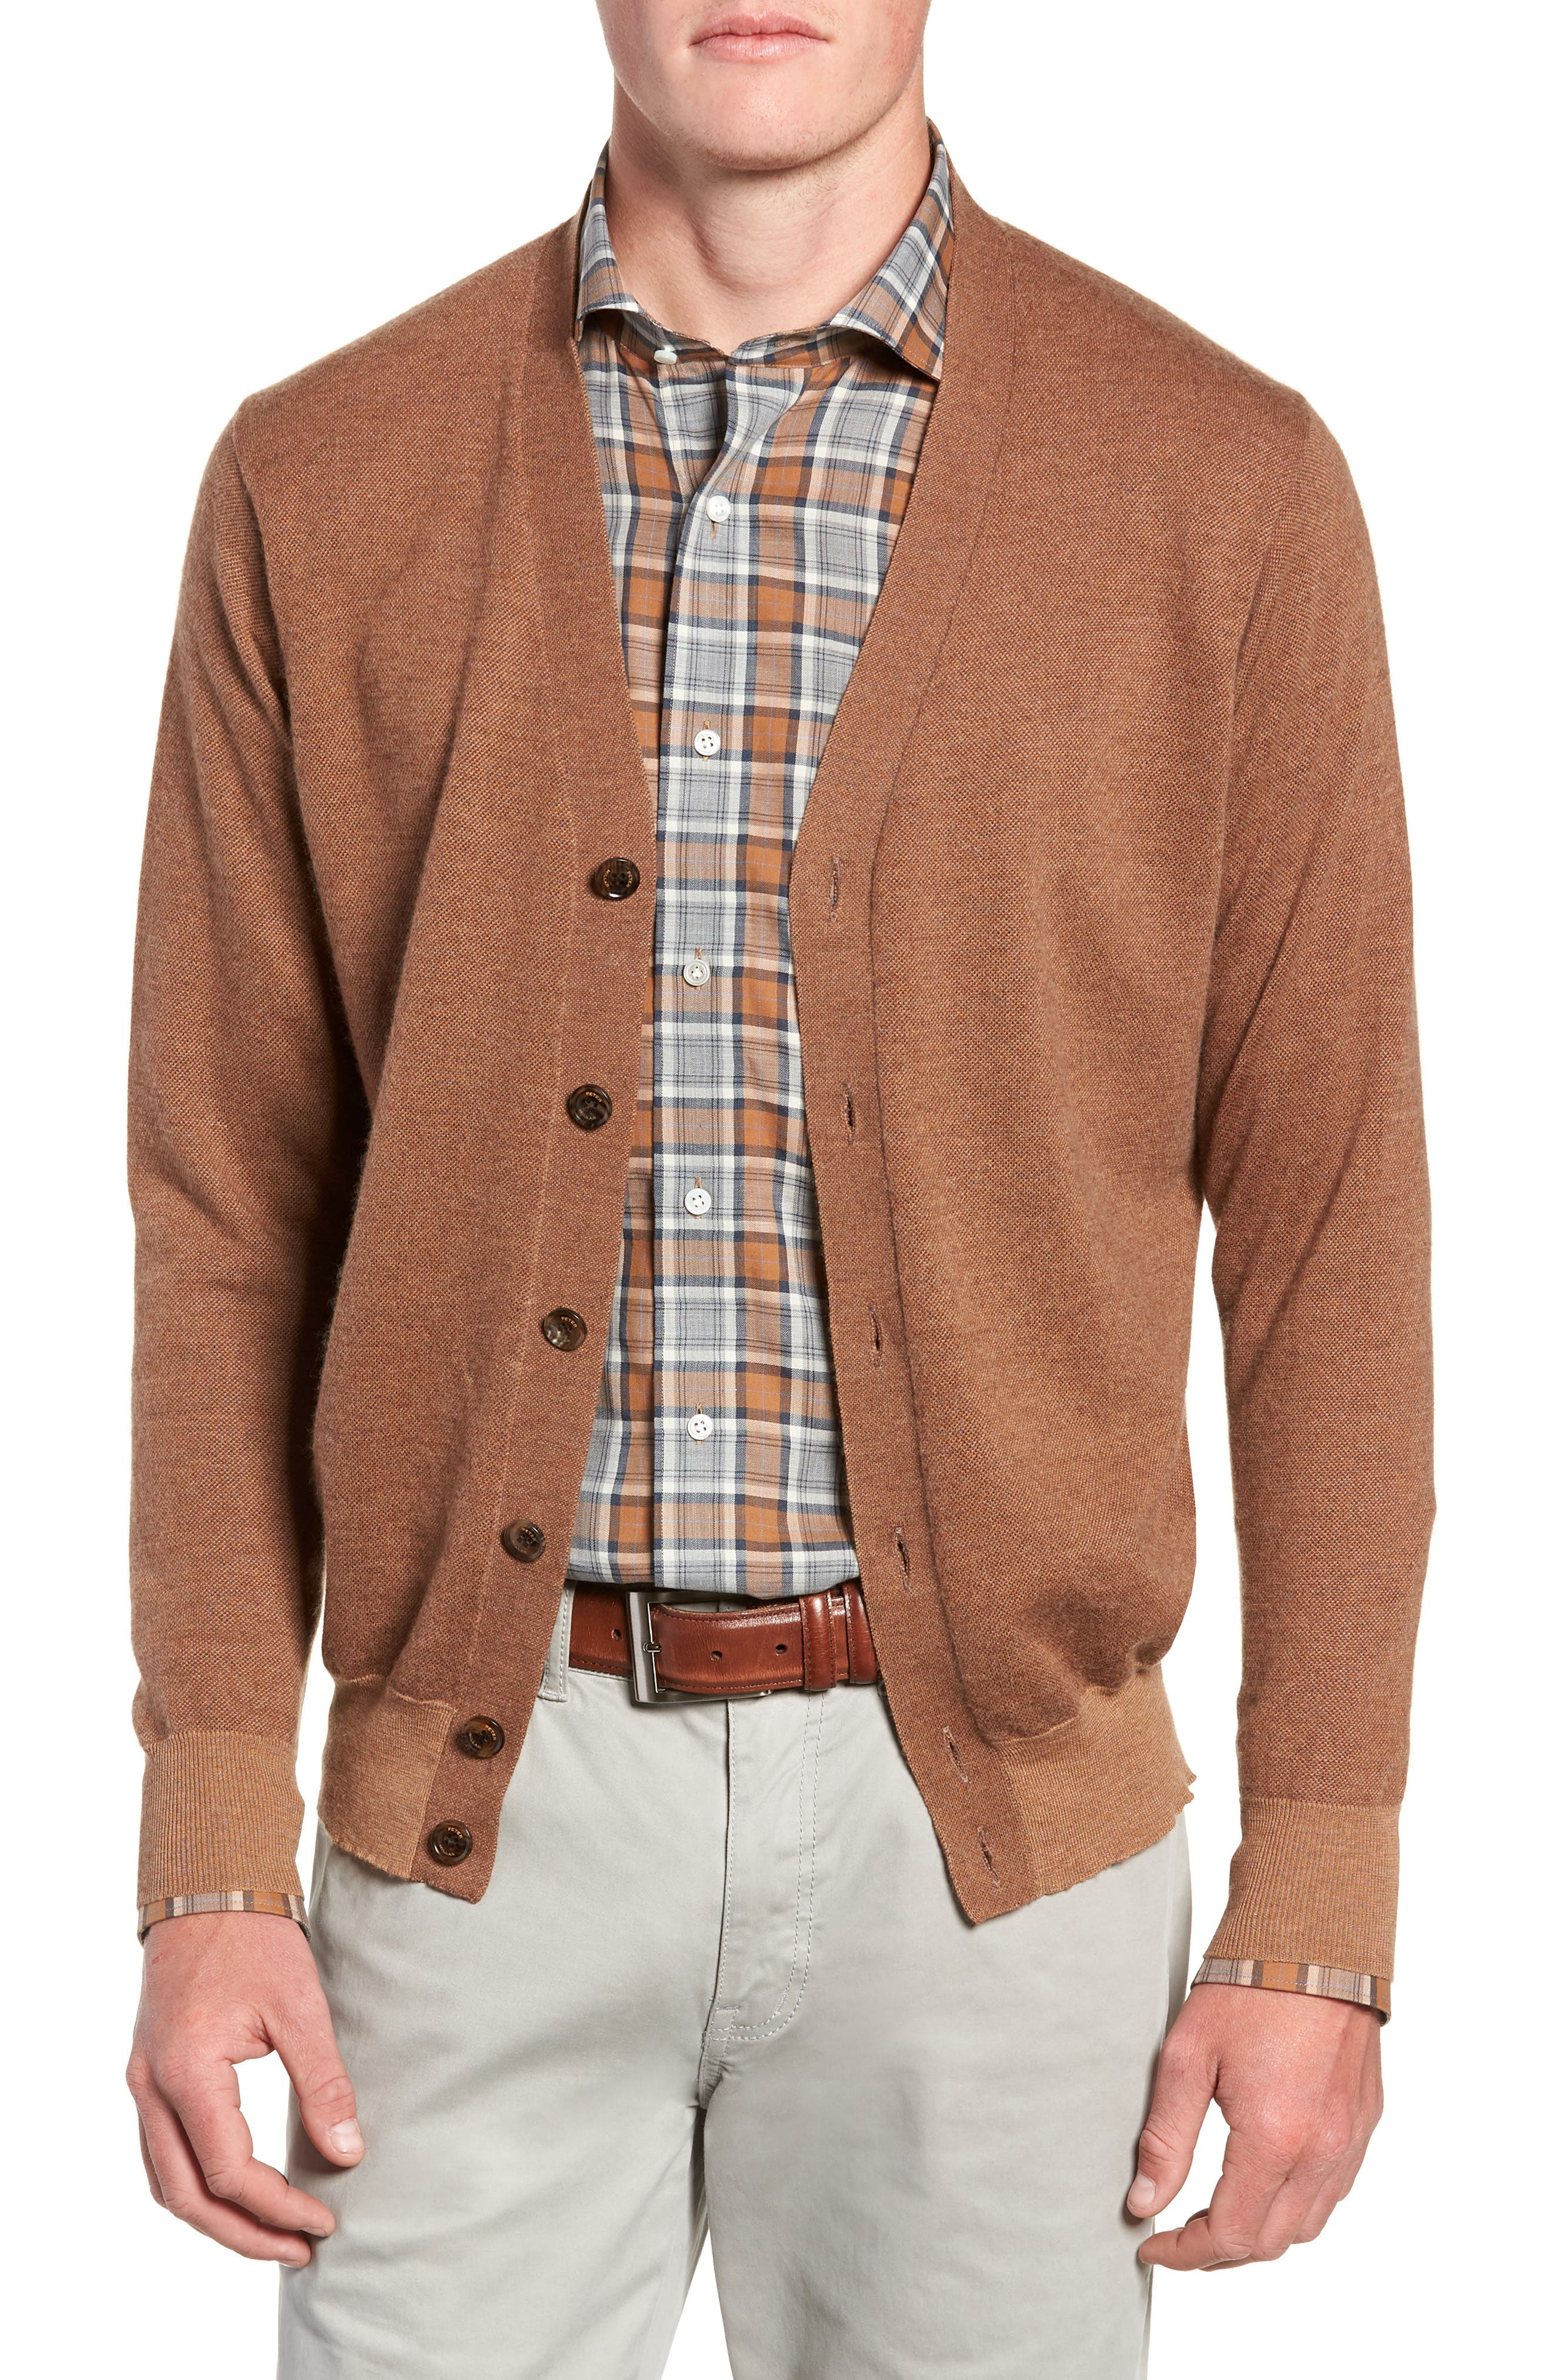 English Manor Cardigan,                         Main,                         color, VICUNA